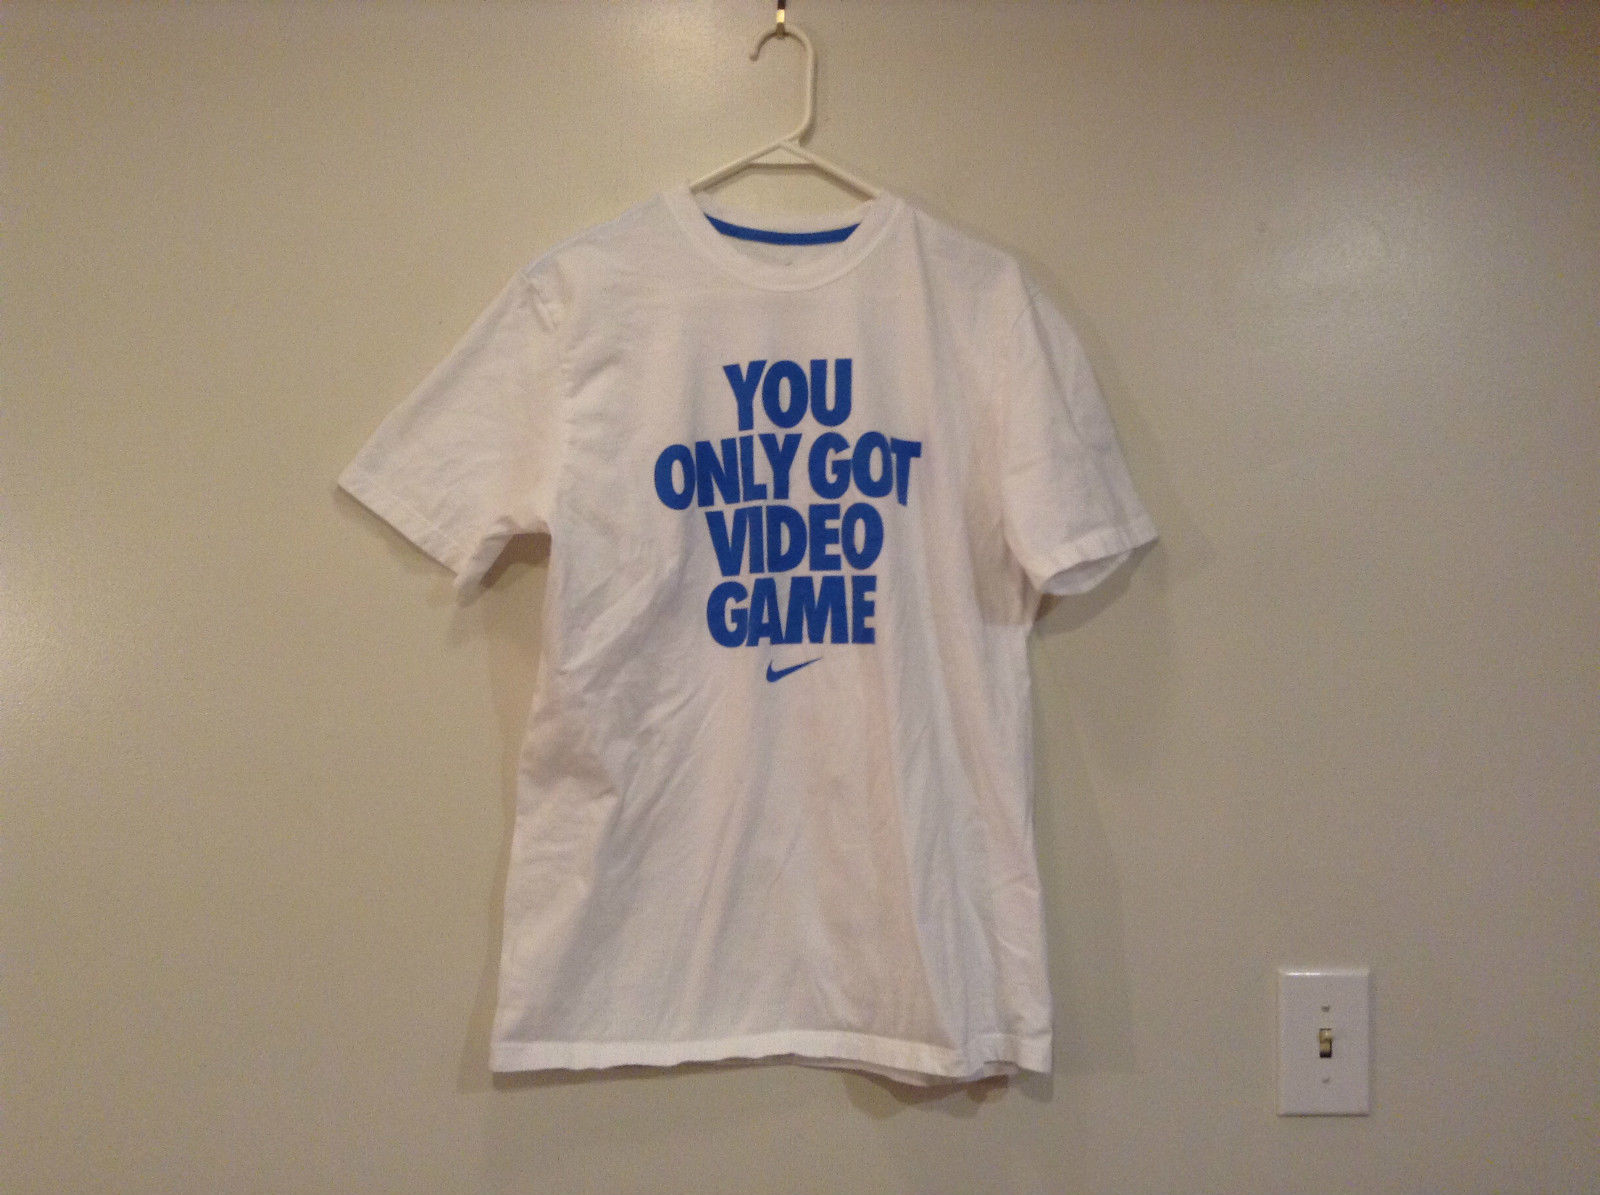 Nike White Short Sleeve T Shirt You Only Got Video Game on Front in Blue Size L